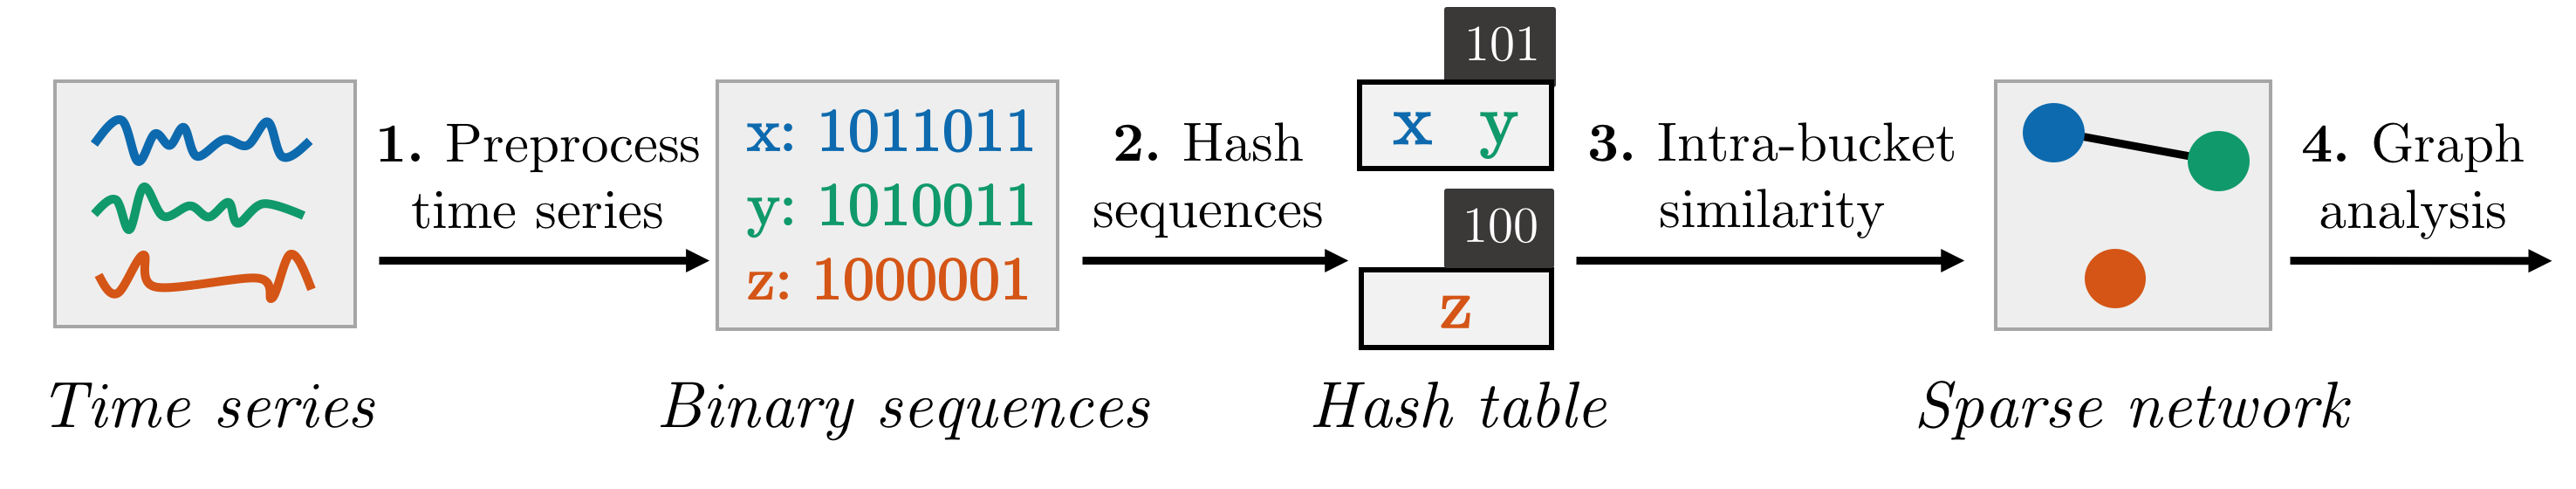 Overview of hashing-based network discovery